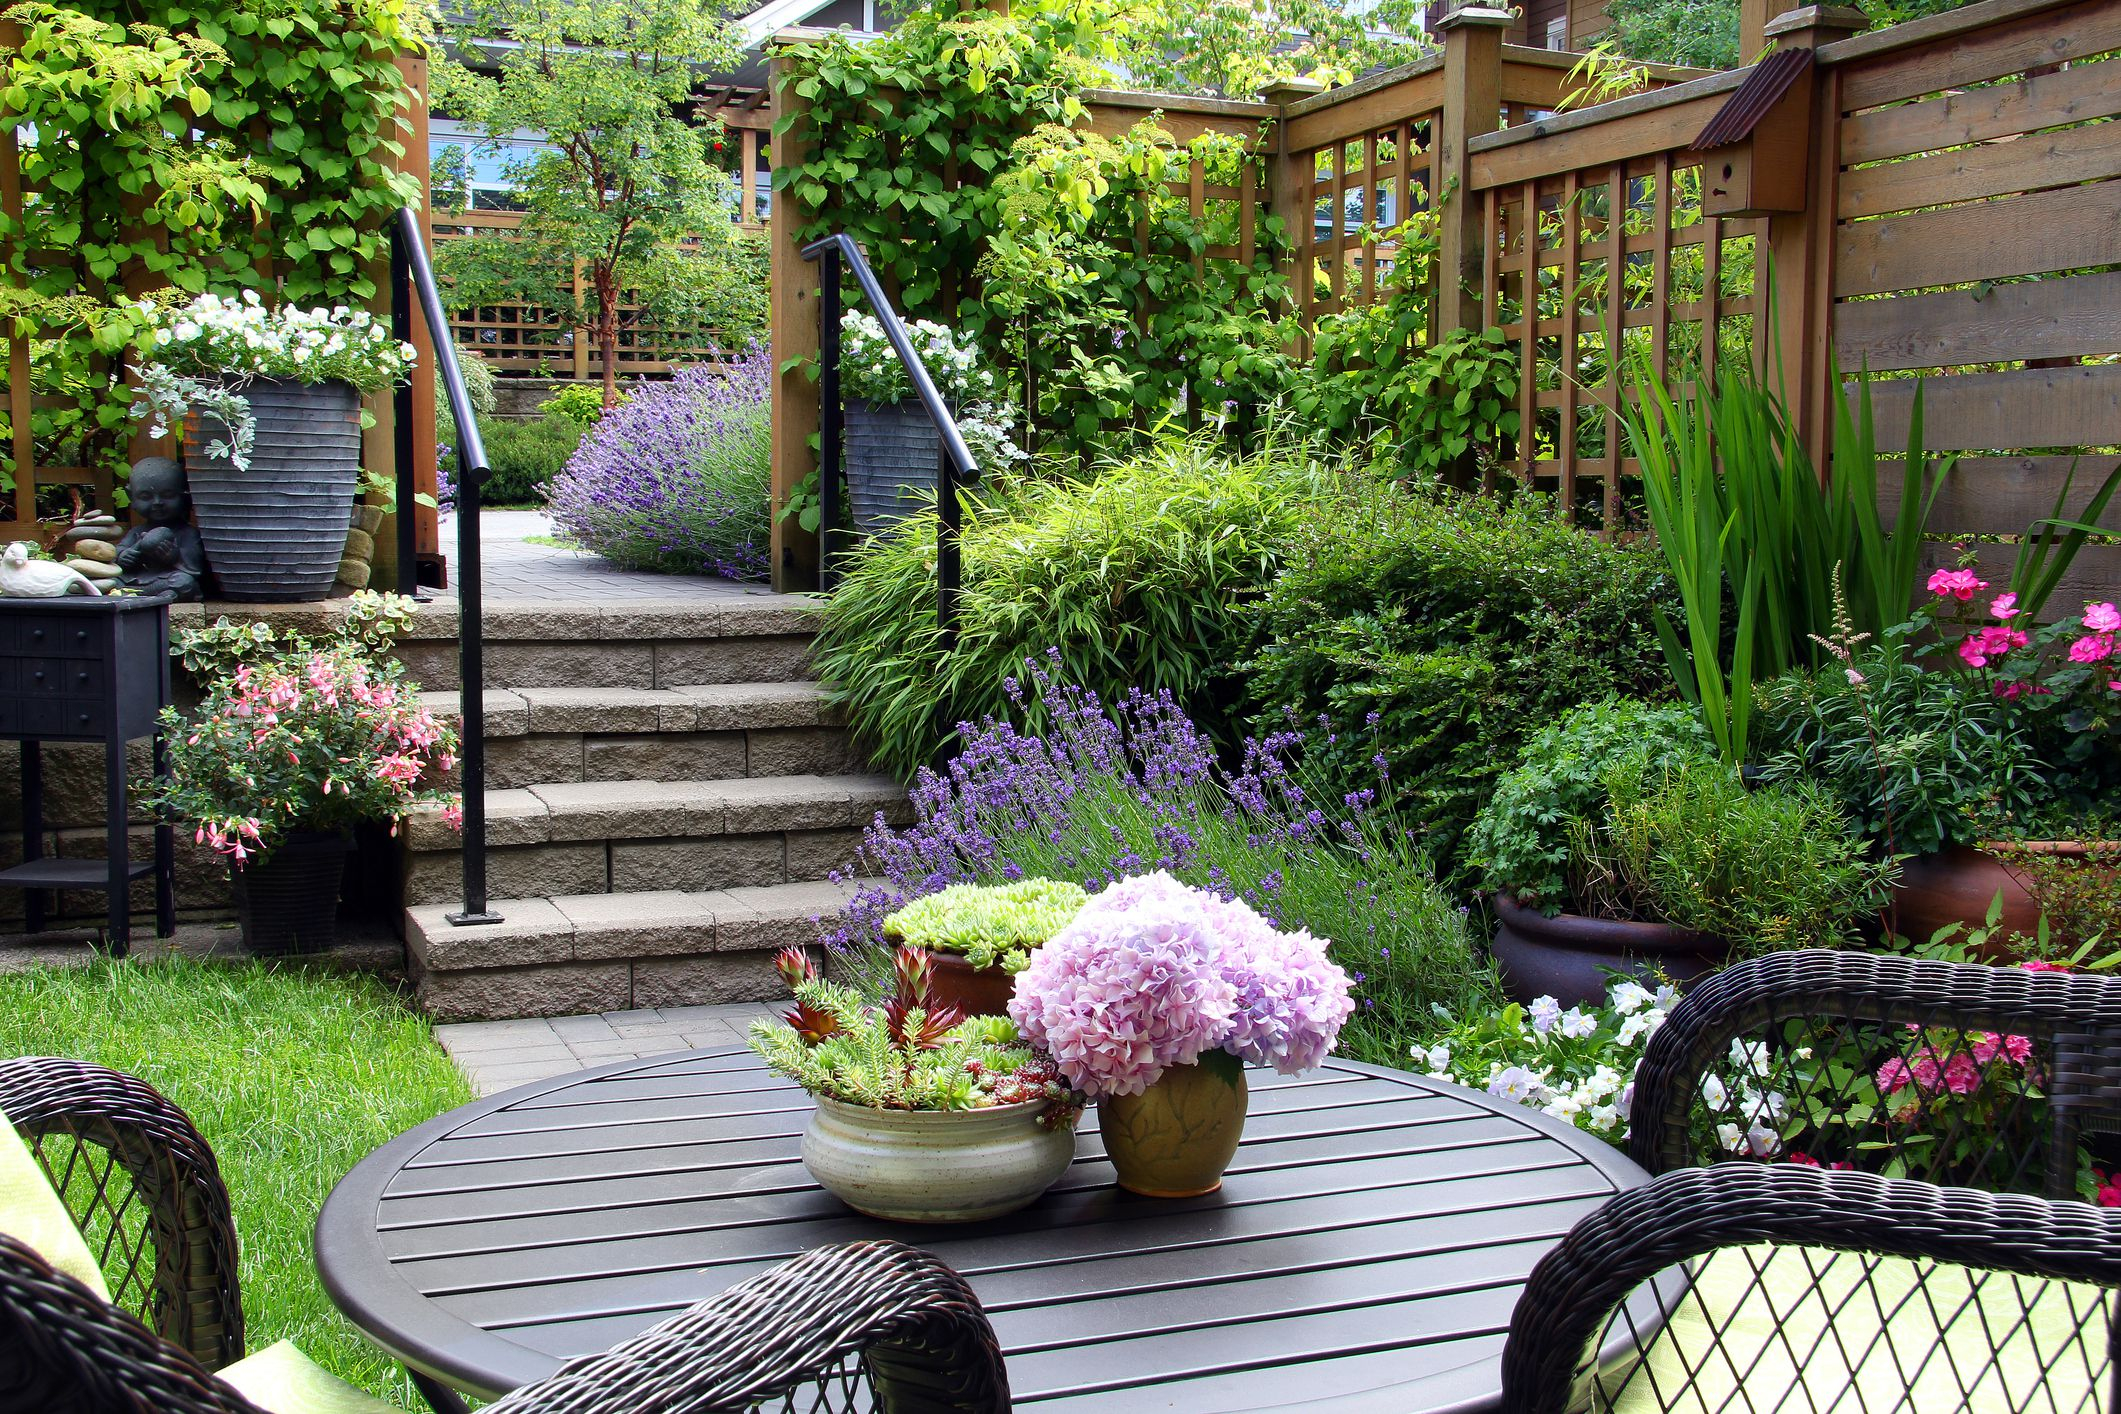 5 Cheap Garden Ideas Best Gardening Ideas On A Budget in 10 Some of the Coolest Designs of How to Craft Budget Friendly Backyard Landscaping